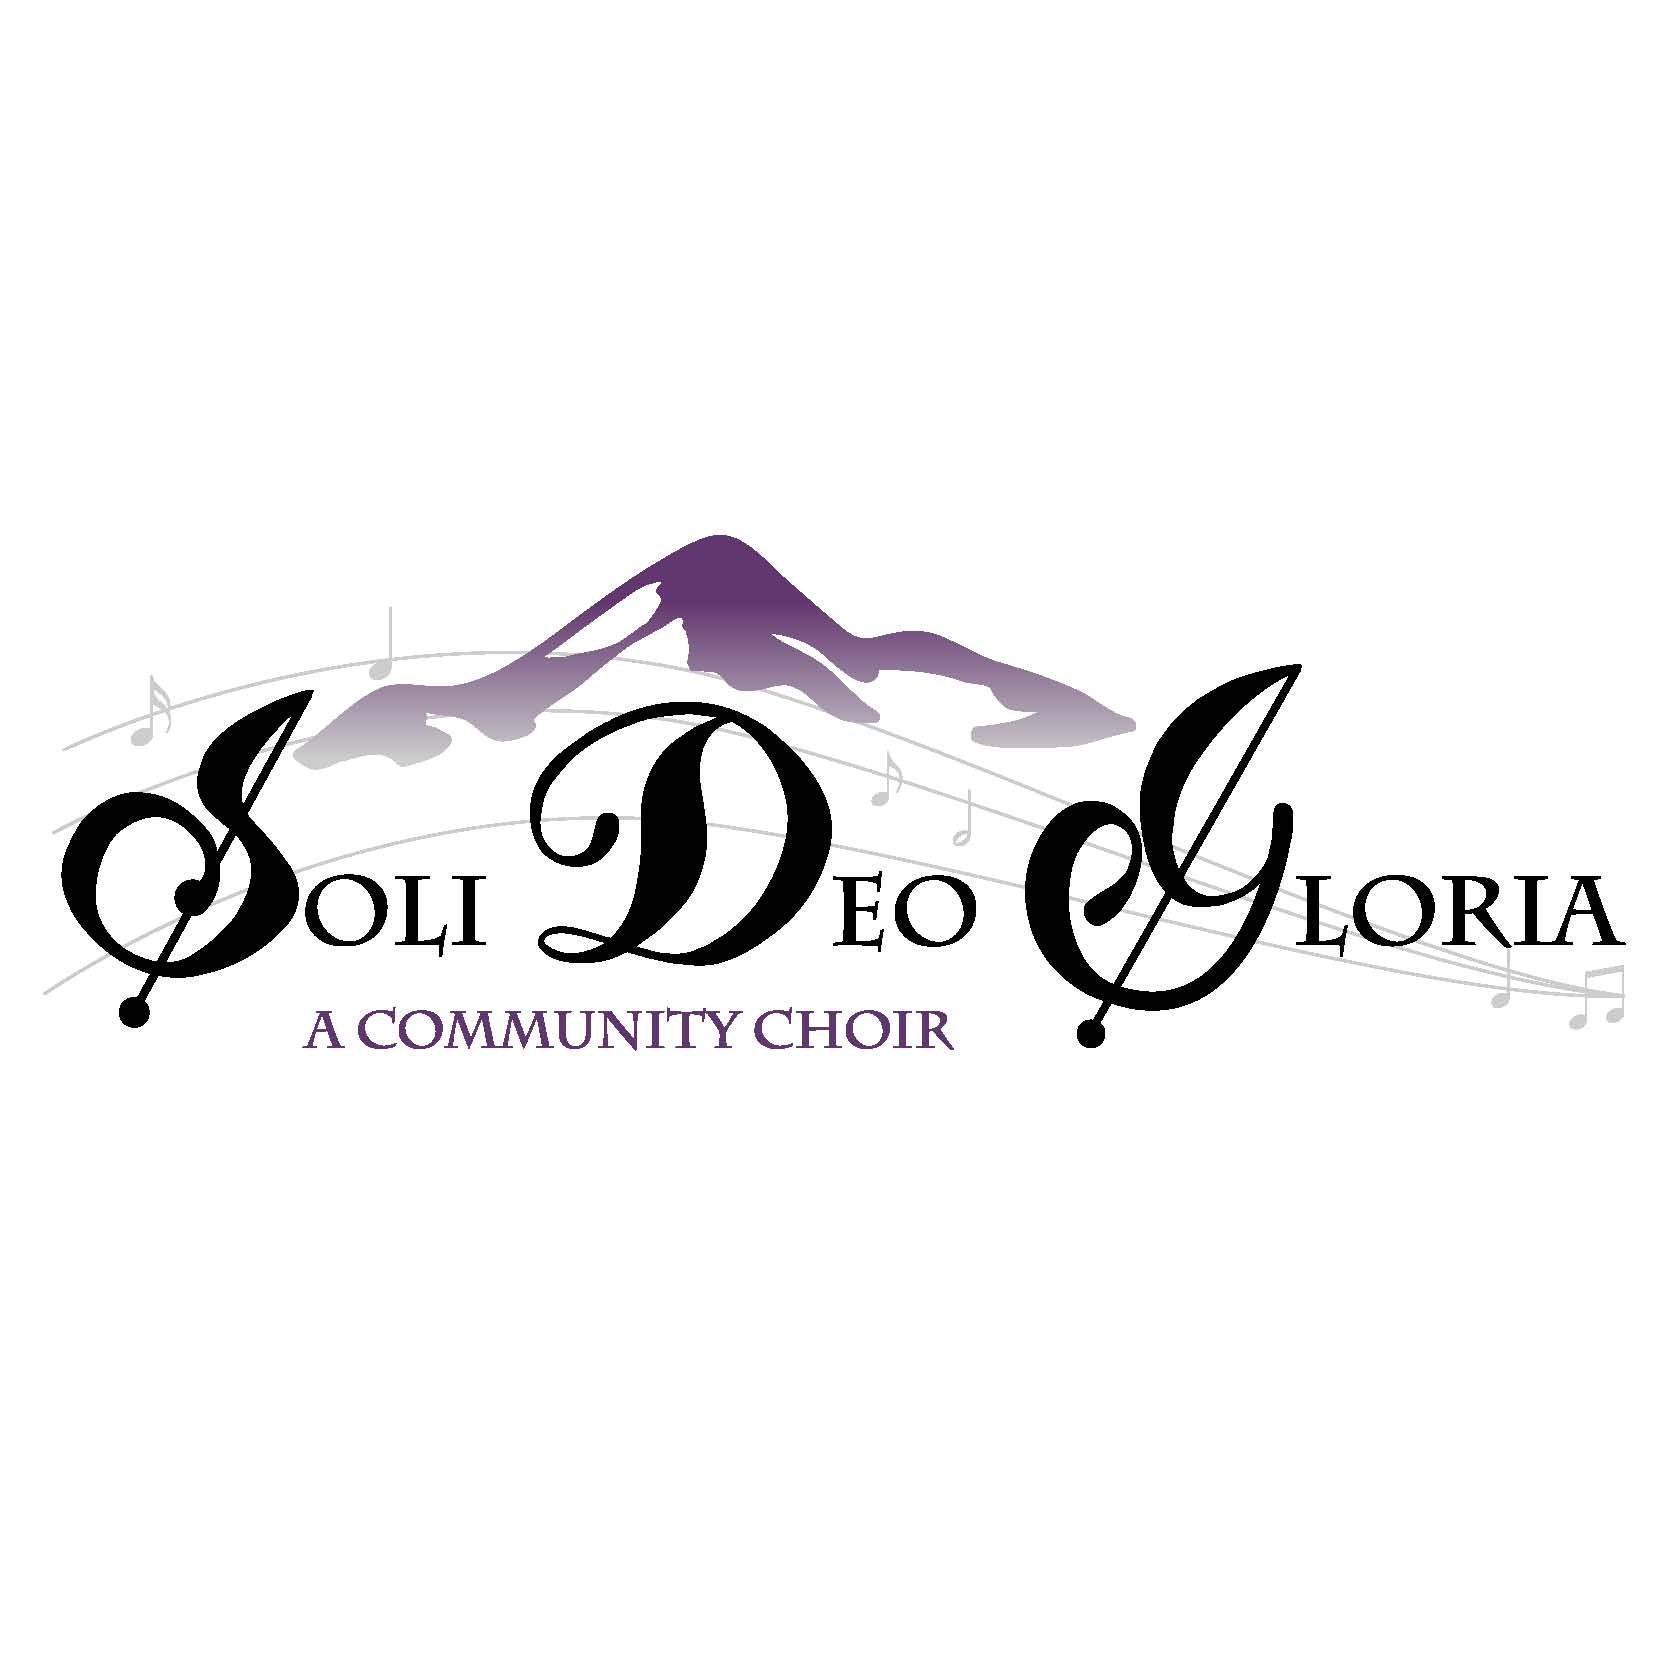 Soli Deo Gloria Requiem Amp Exultation Presented By Soli